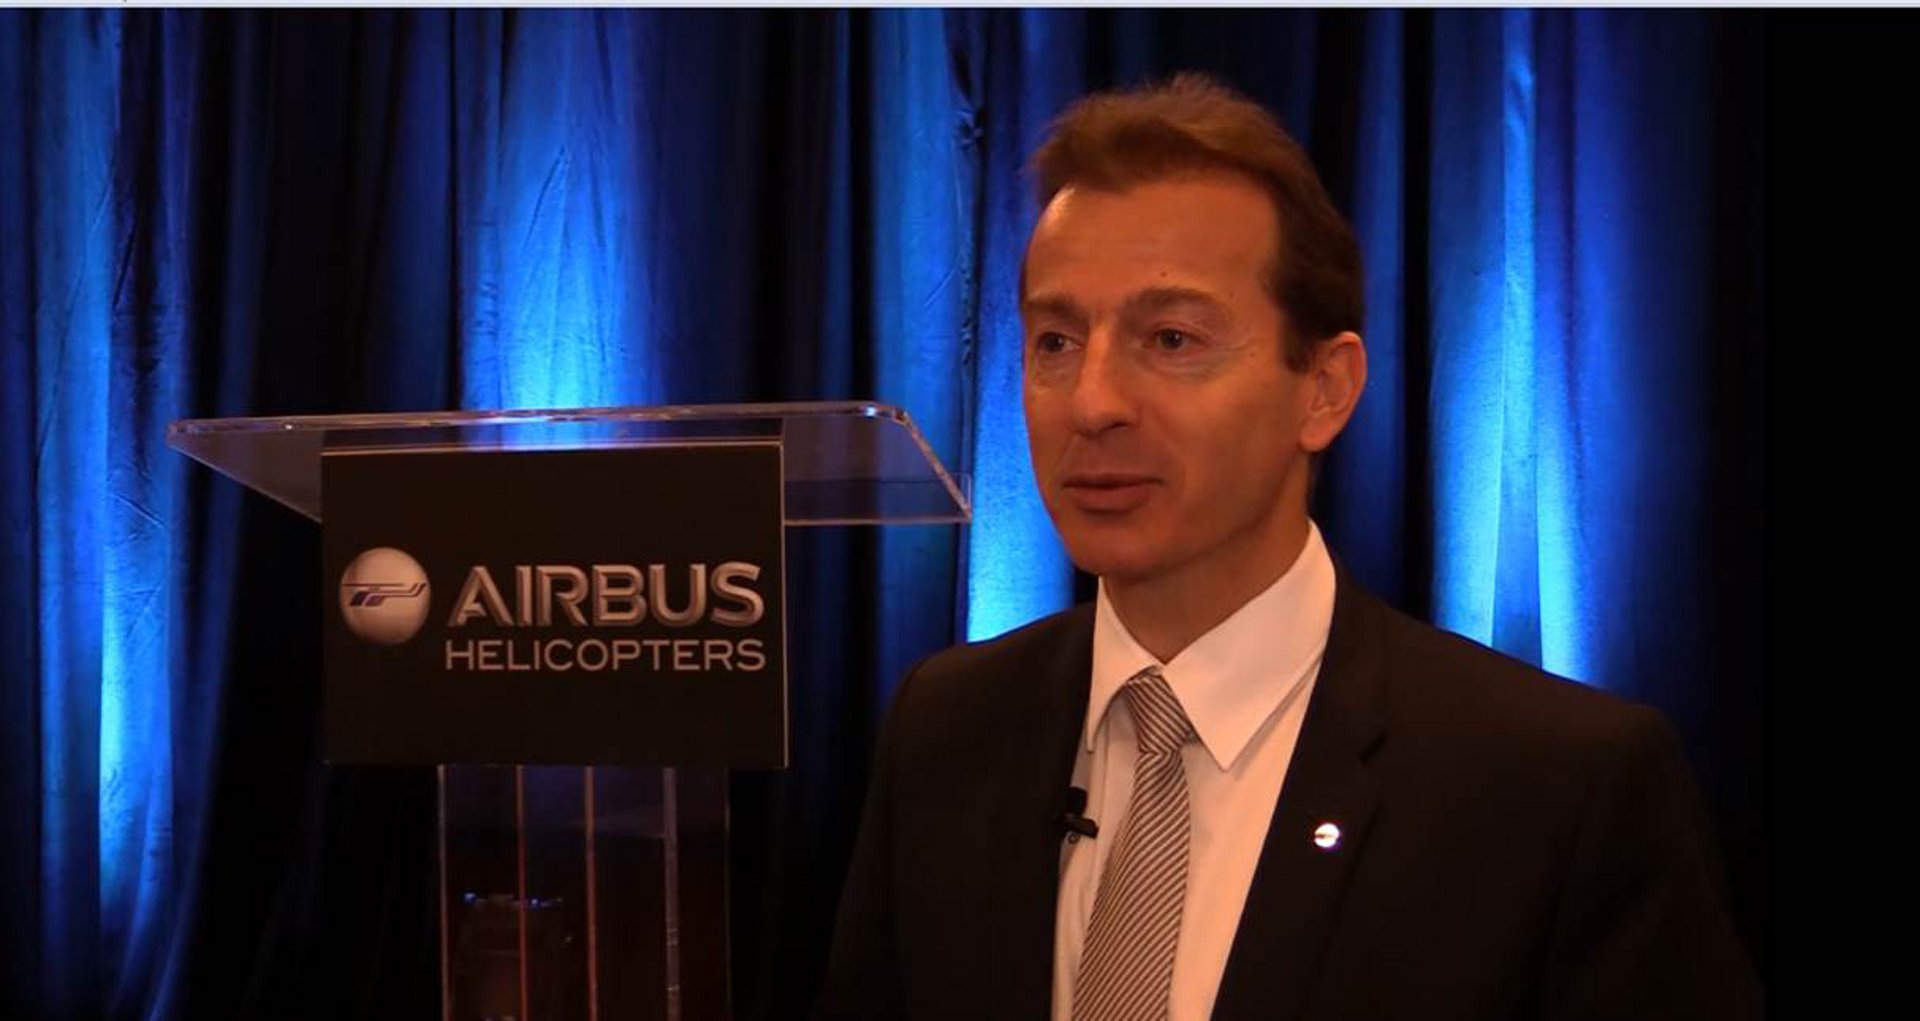 Guillaume Faury at HAI Heli-Expo 2016 Press Conference